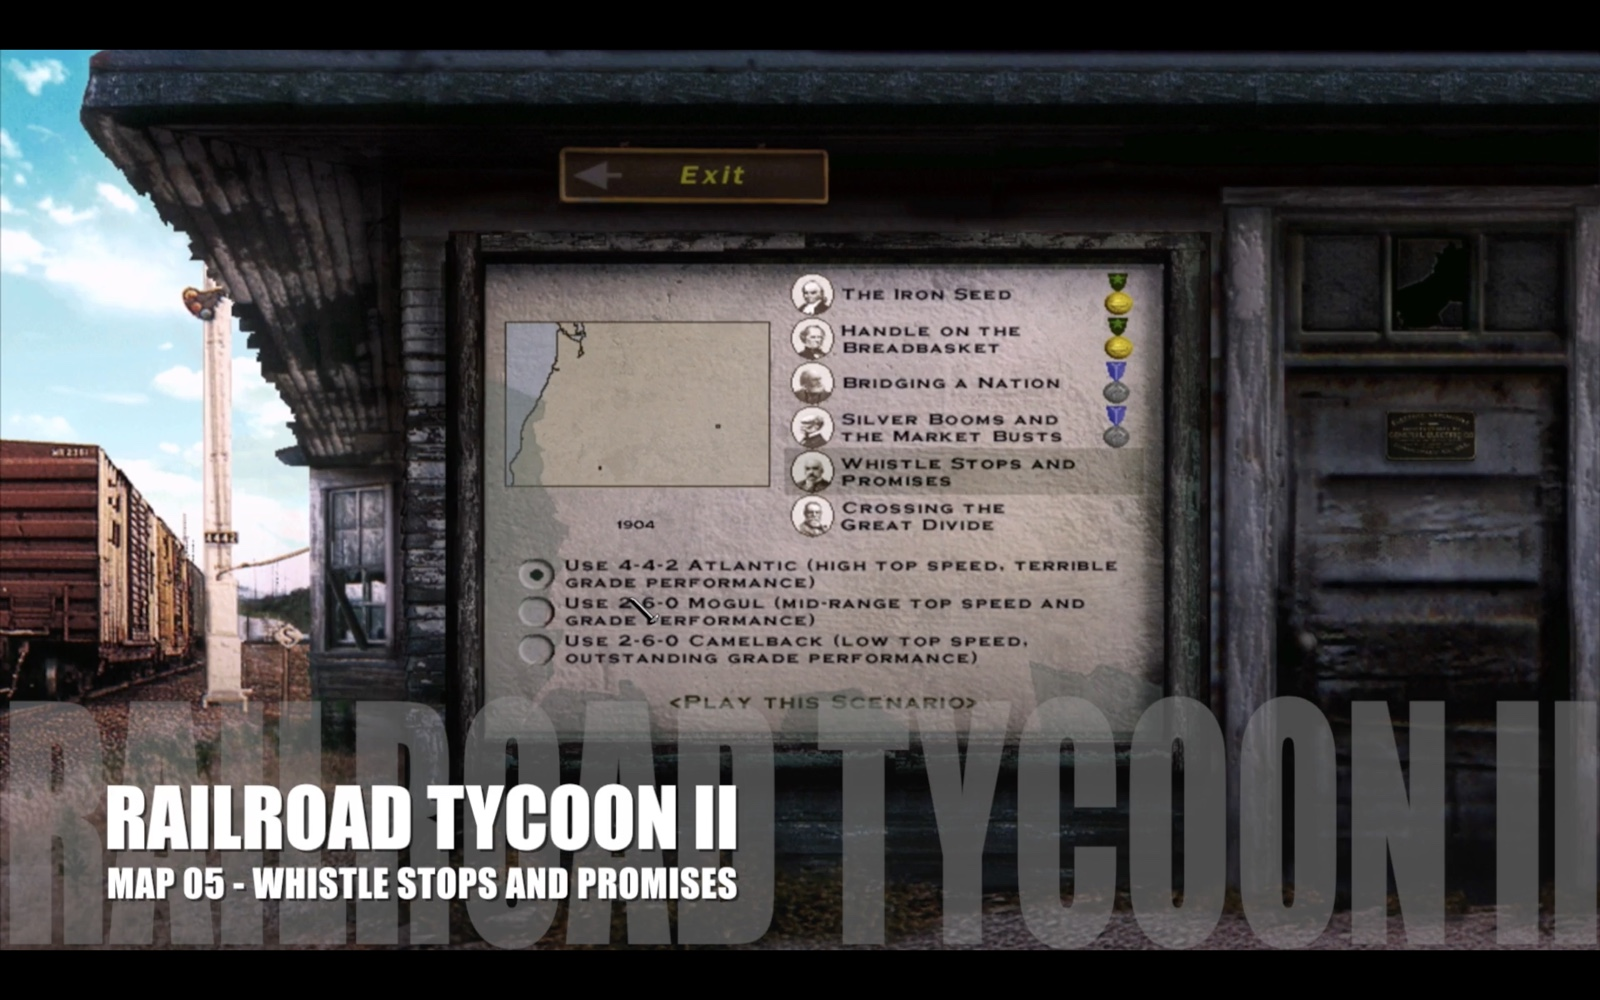 Railroad Tycoon II – Map 05 – Whistle Stops and Promises